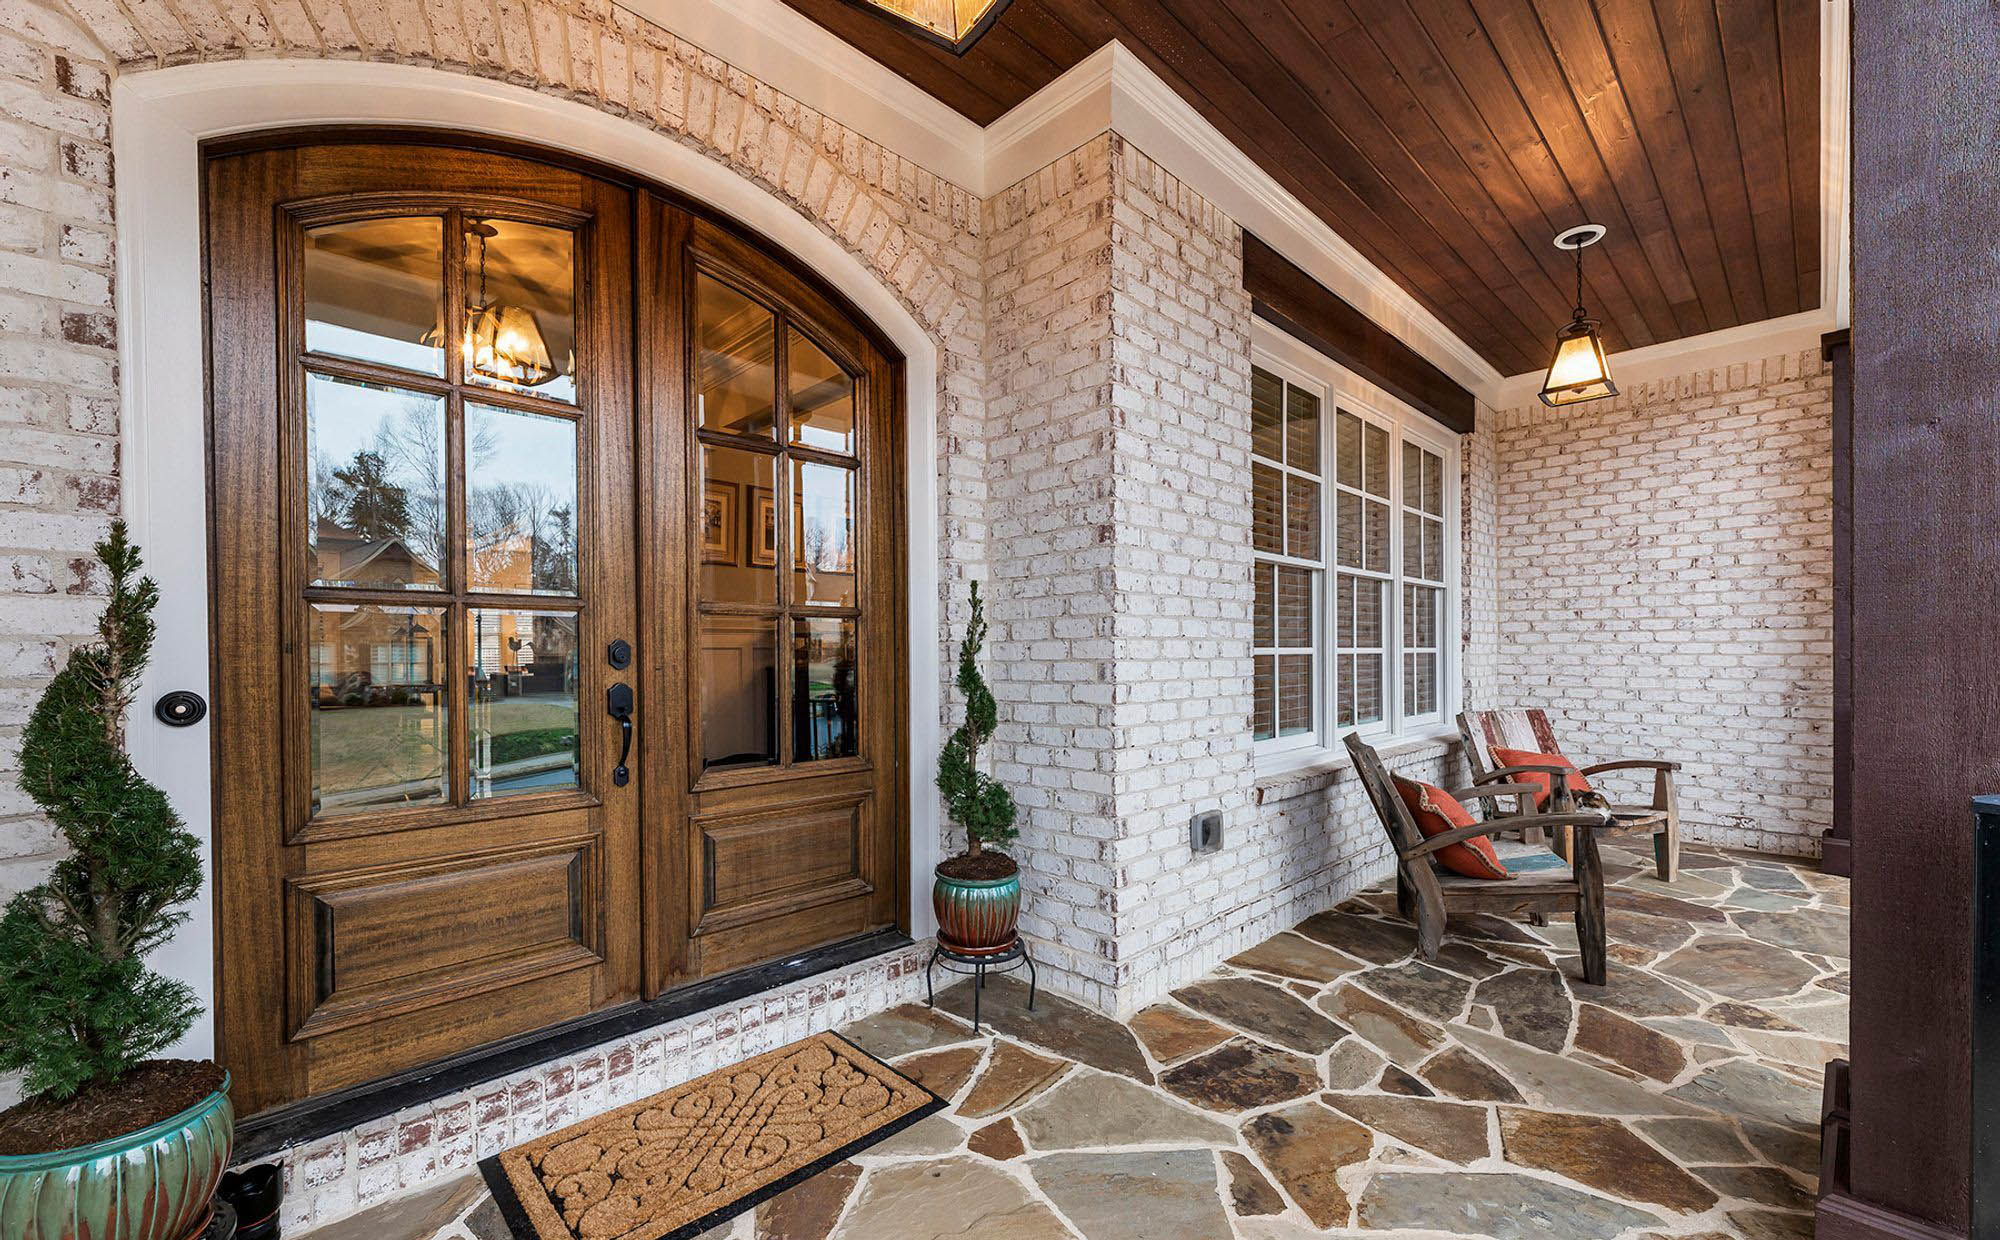 covered front porch ideas wood arched doors white washed brick stone floor porch plants wood chairs